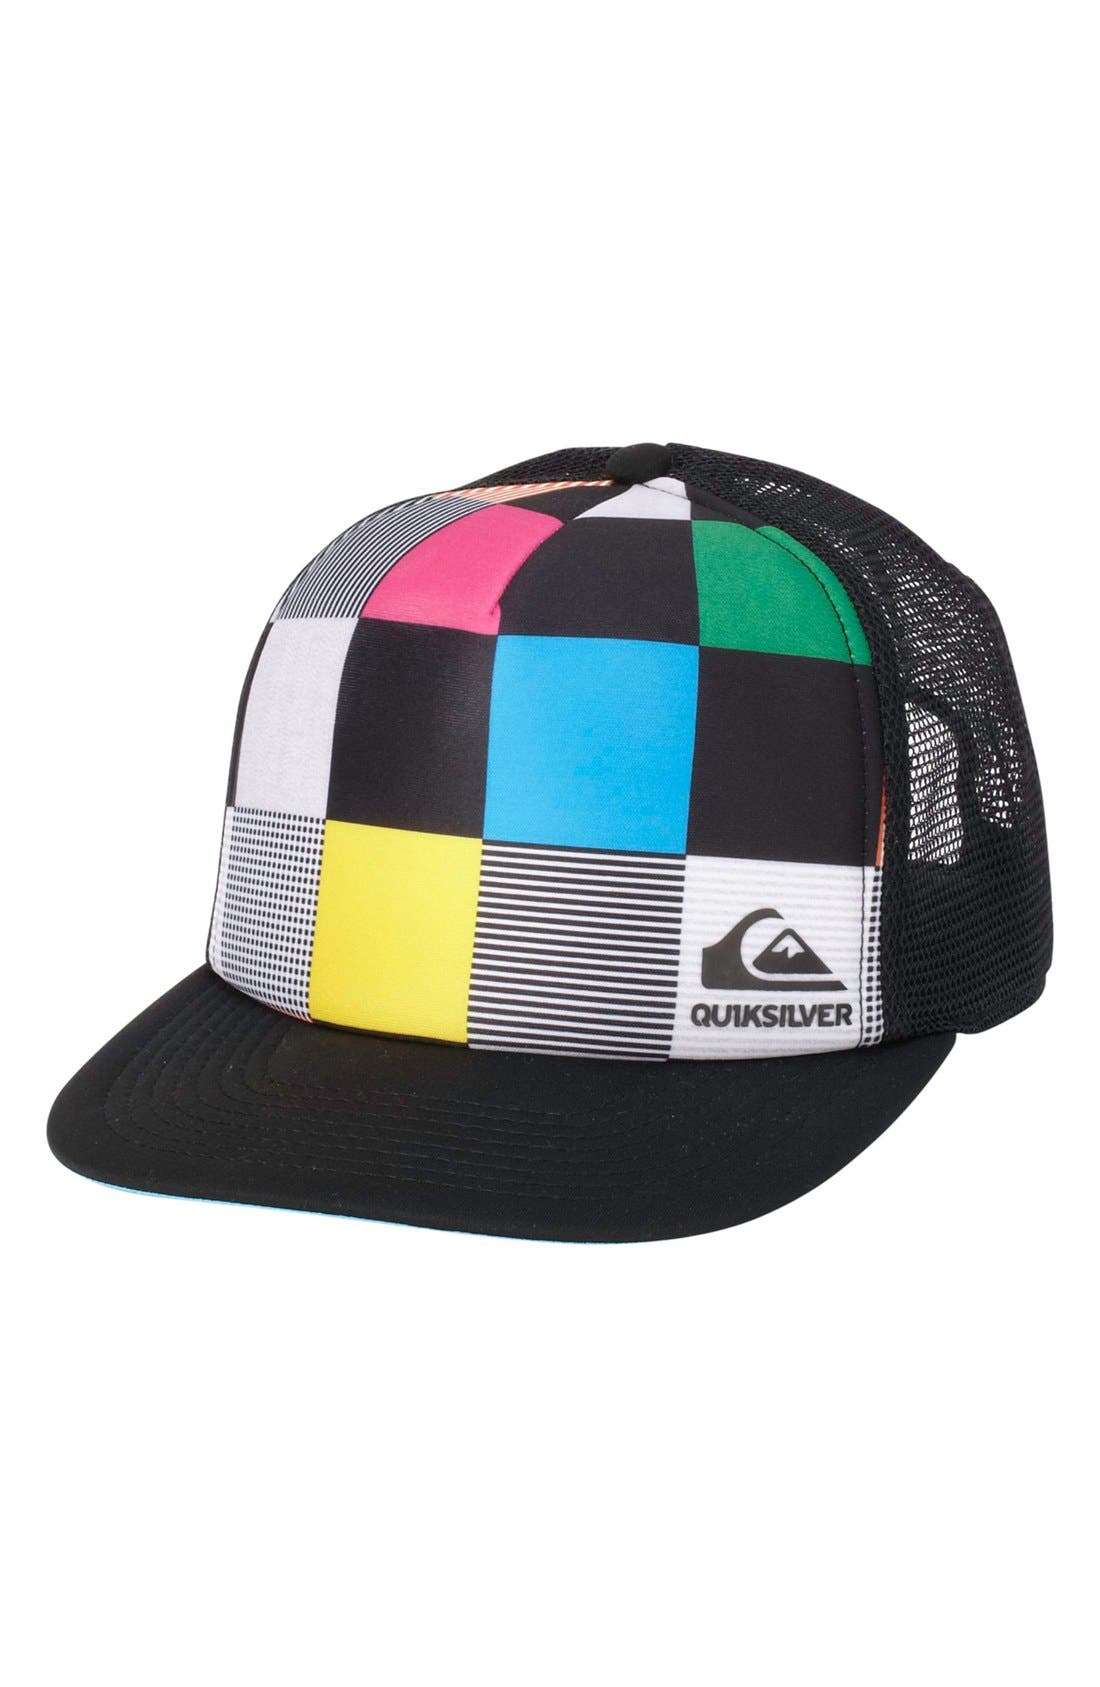 Alternate Image 1 Selected - Quiksilver 'Boards' Trucker Hat (Big Boys)